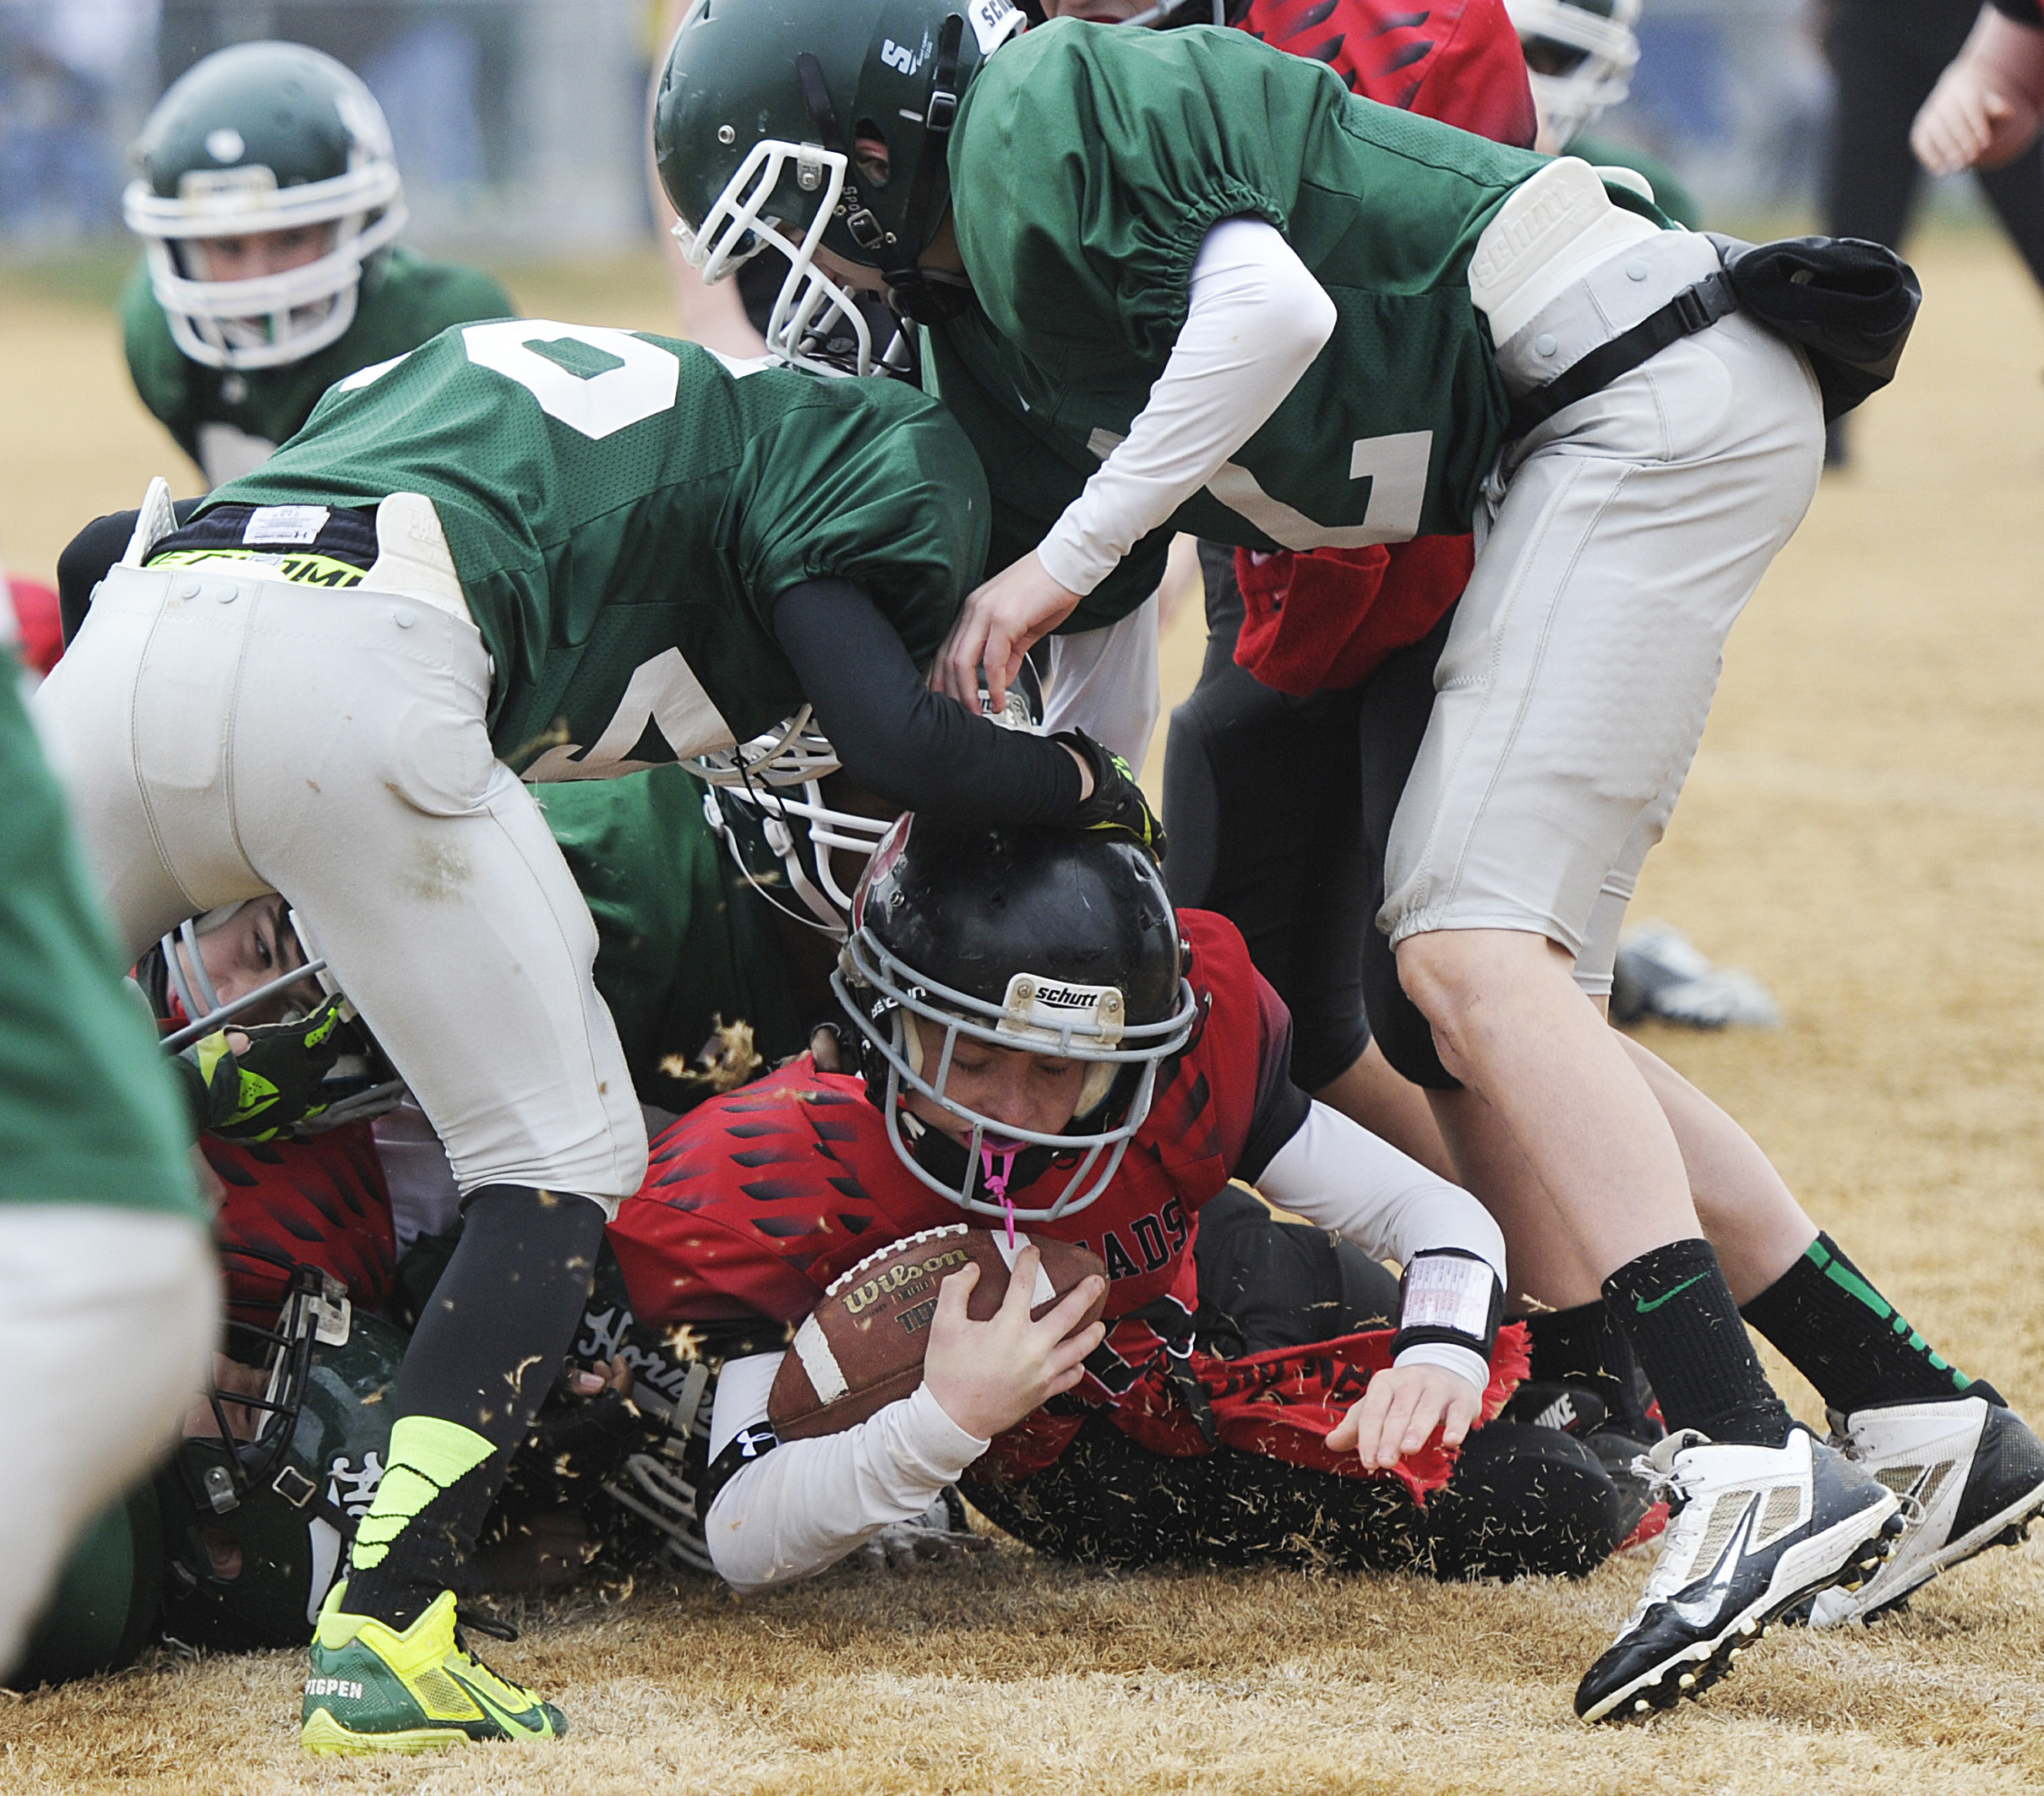 Riverheads' Devin Morris is tackled by a group of Wilson players during the seniors division game for the Augusta County Quarterback Club Little League Super Bowl on Saturday, Nov. 16, 2013, in Stuarts Draft.